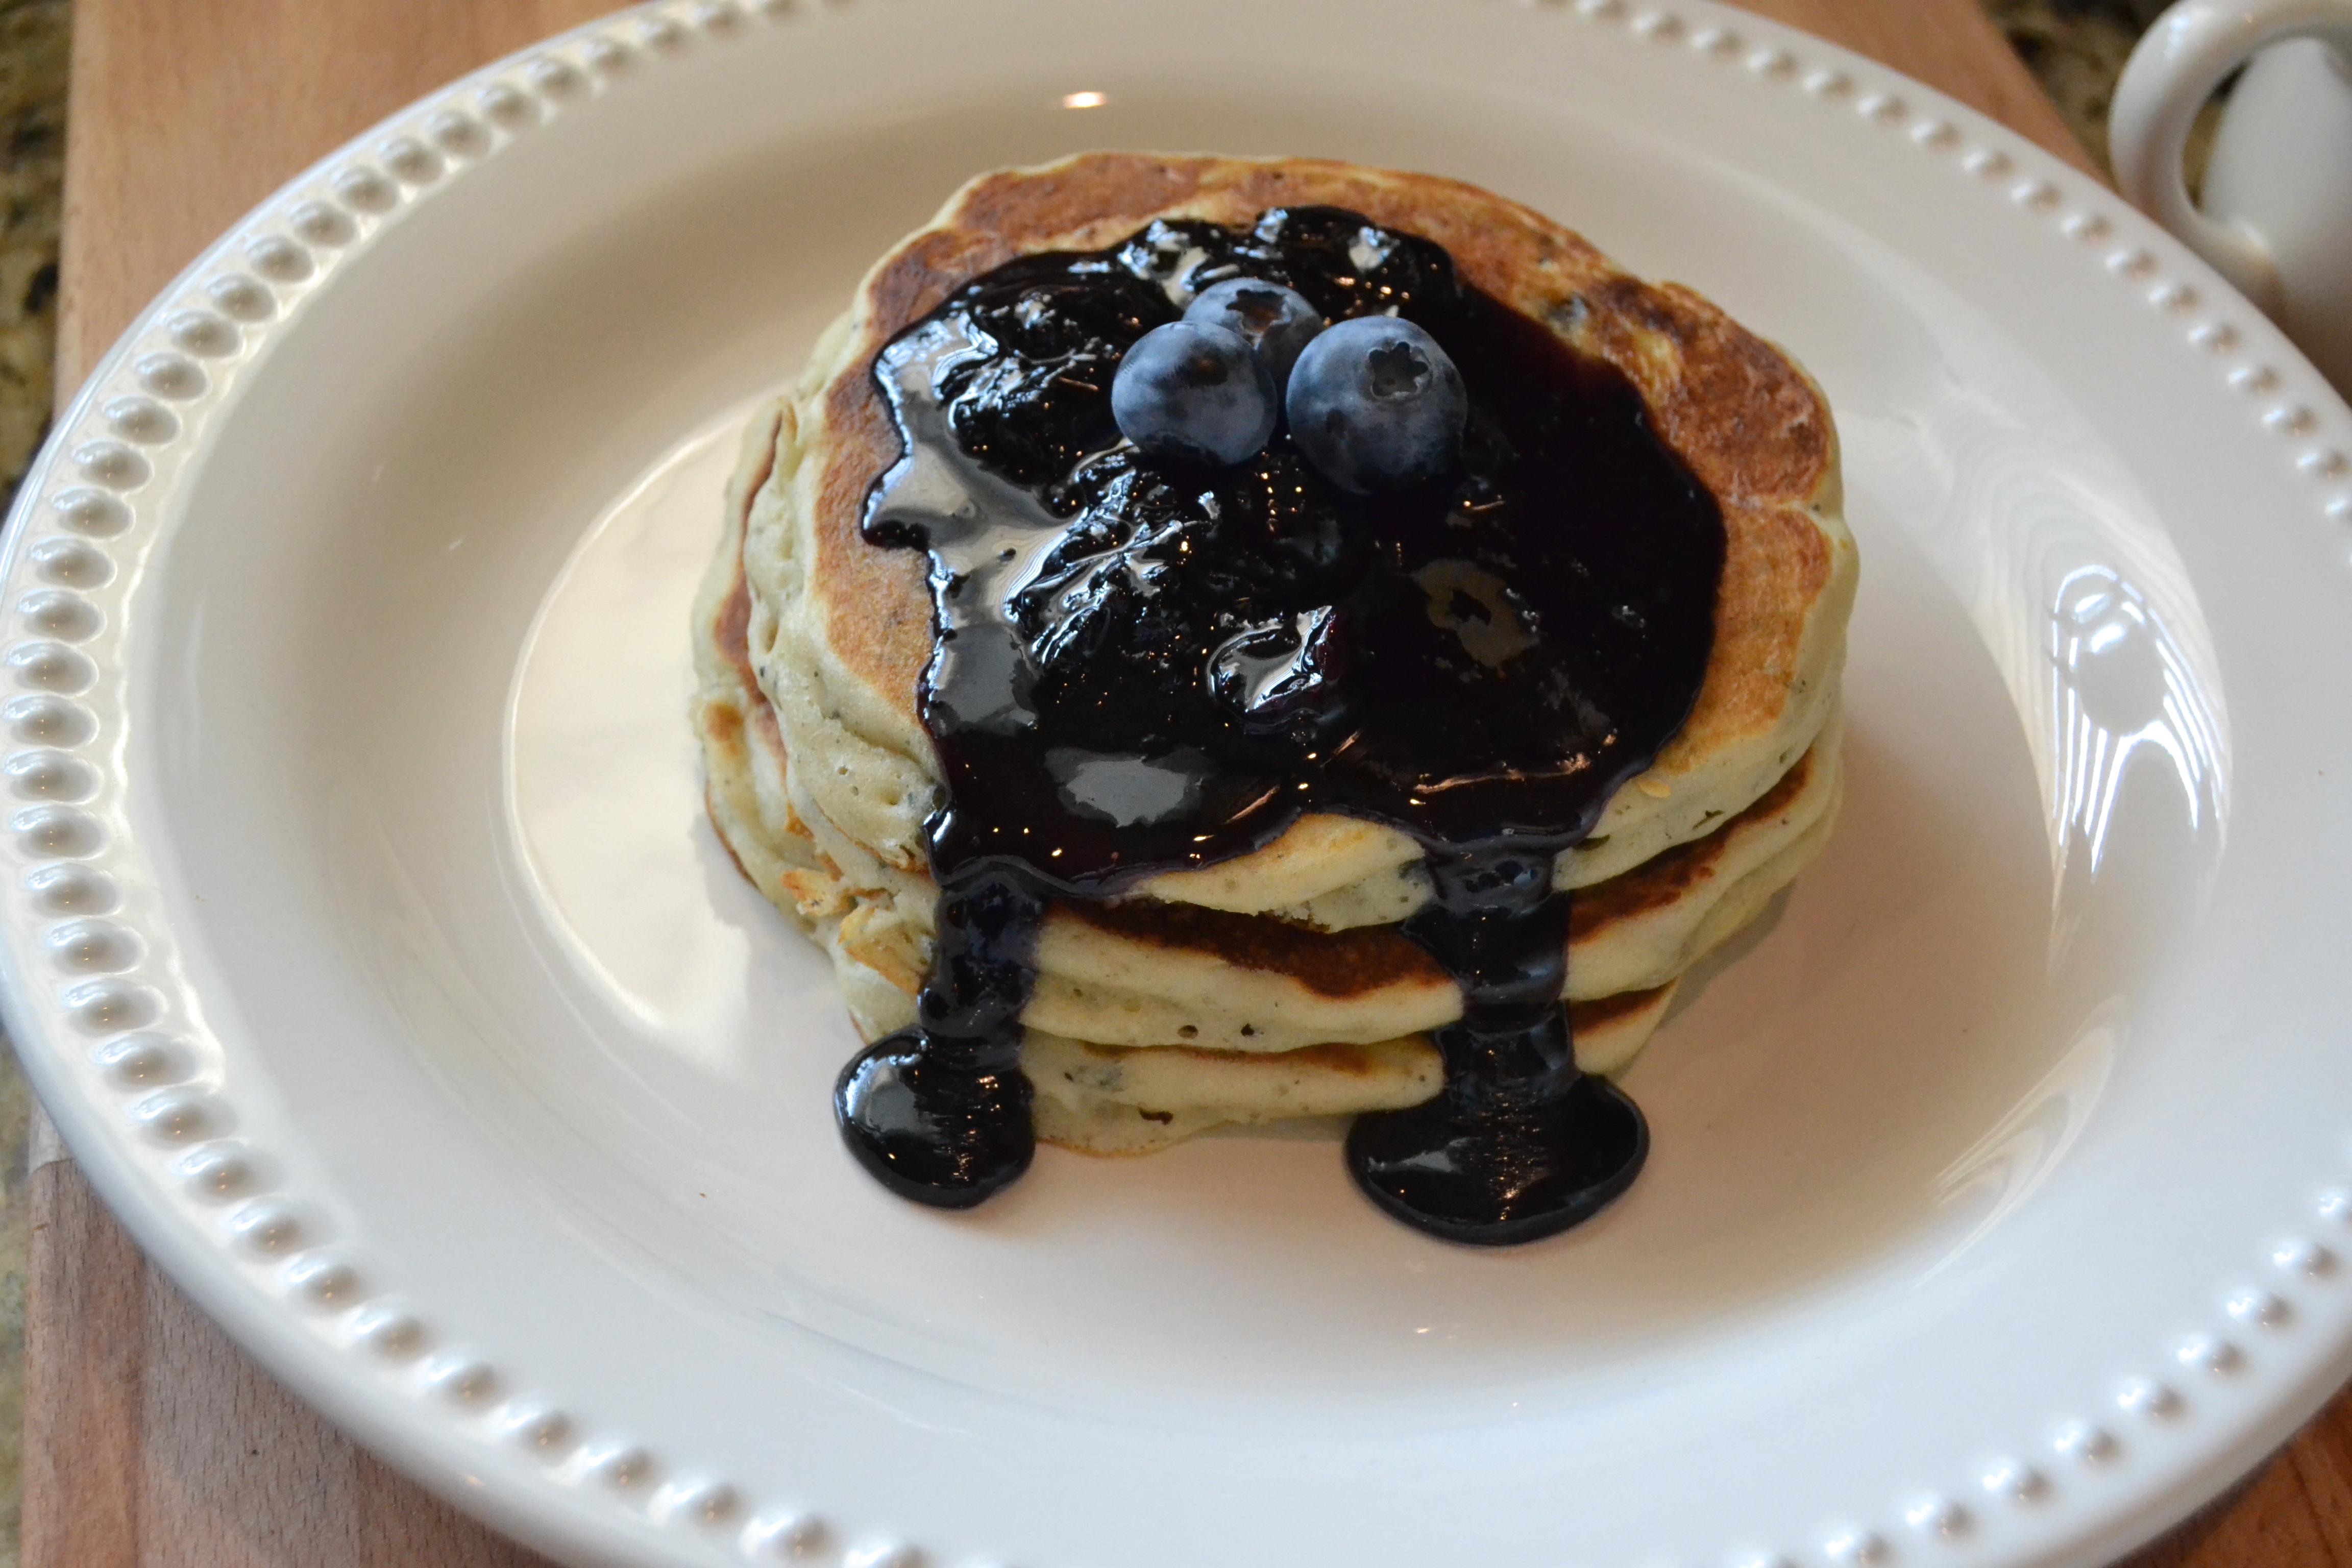 Sausage Blueberry Pancakes with a Blueberry Maple Syrup Reduction